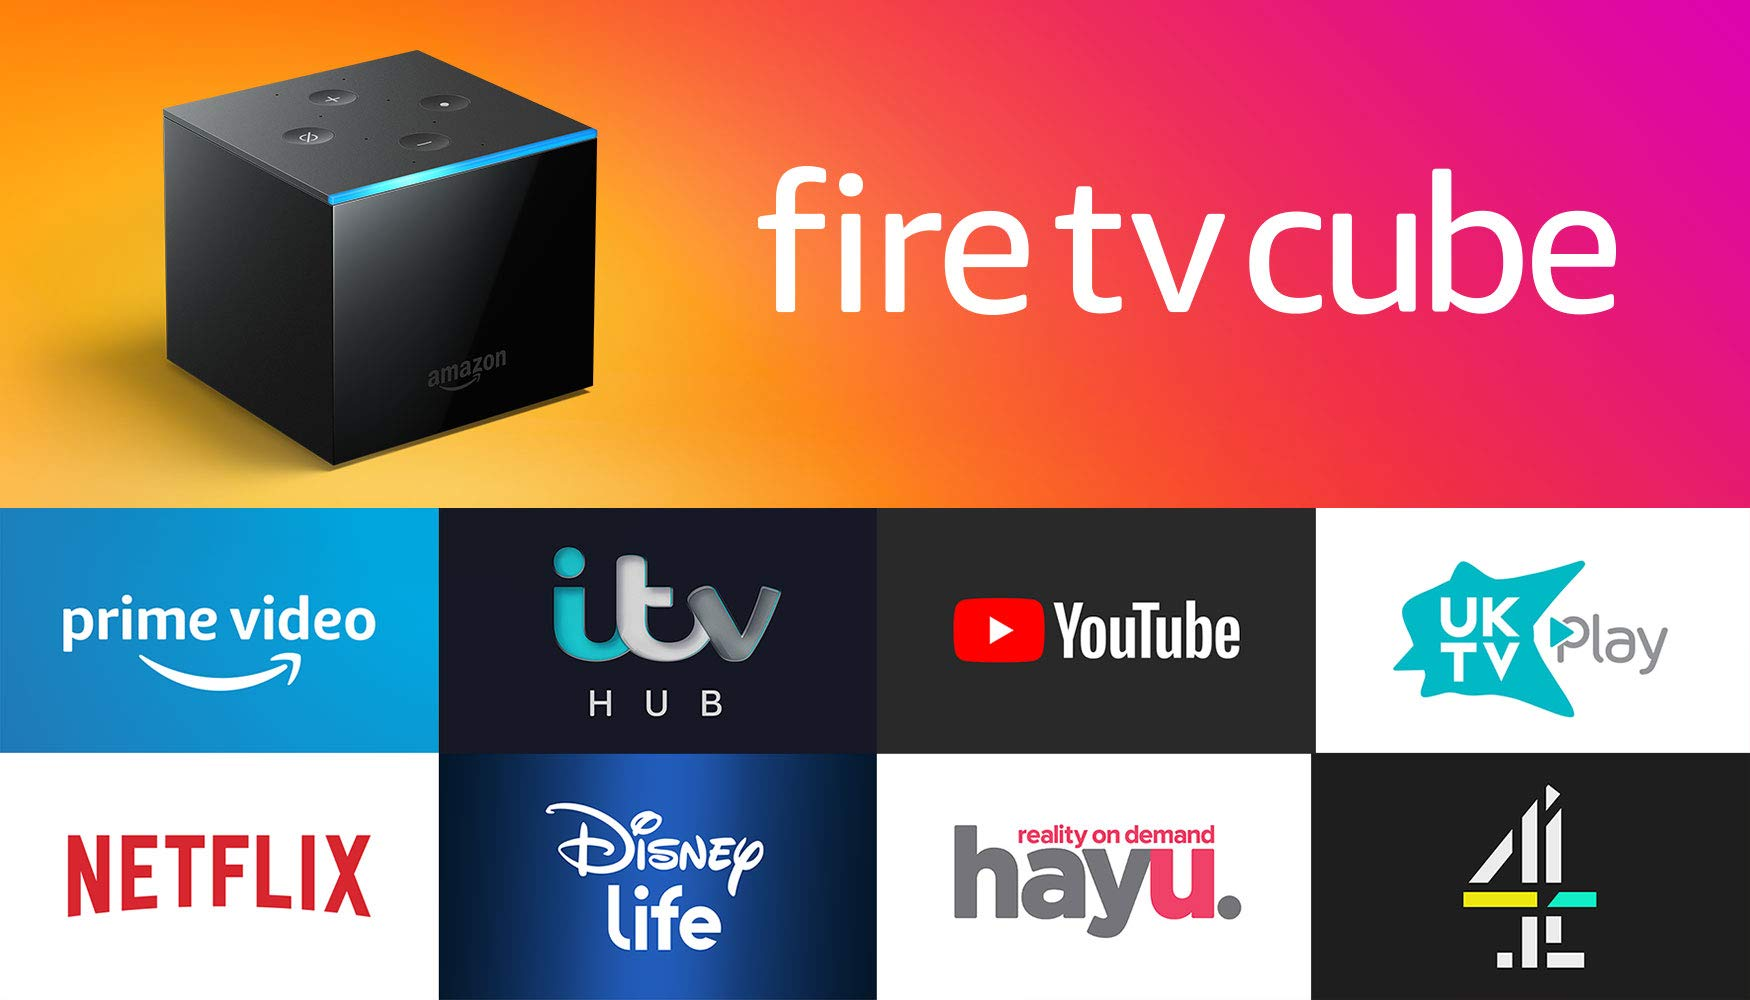 617MDtz3RkL - Fire TV Cube | Hands free with Alexa, 4K Ultra HD streaming media player